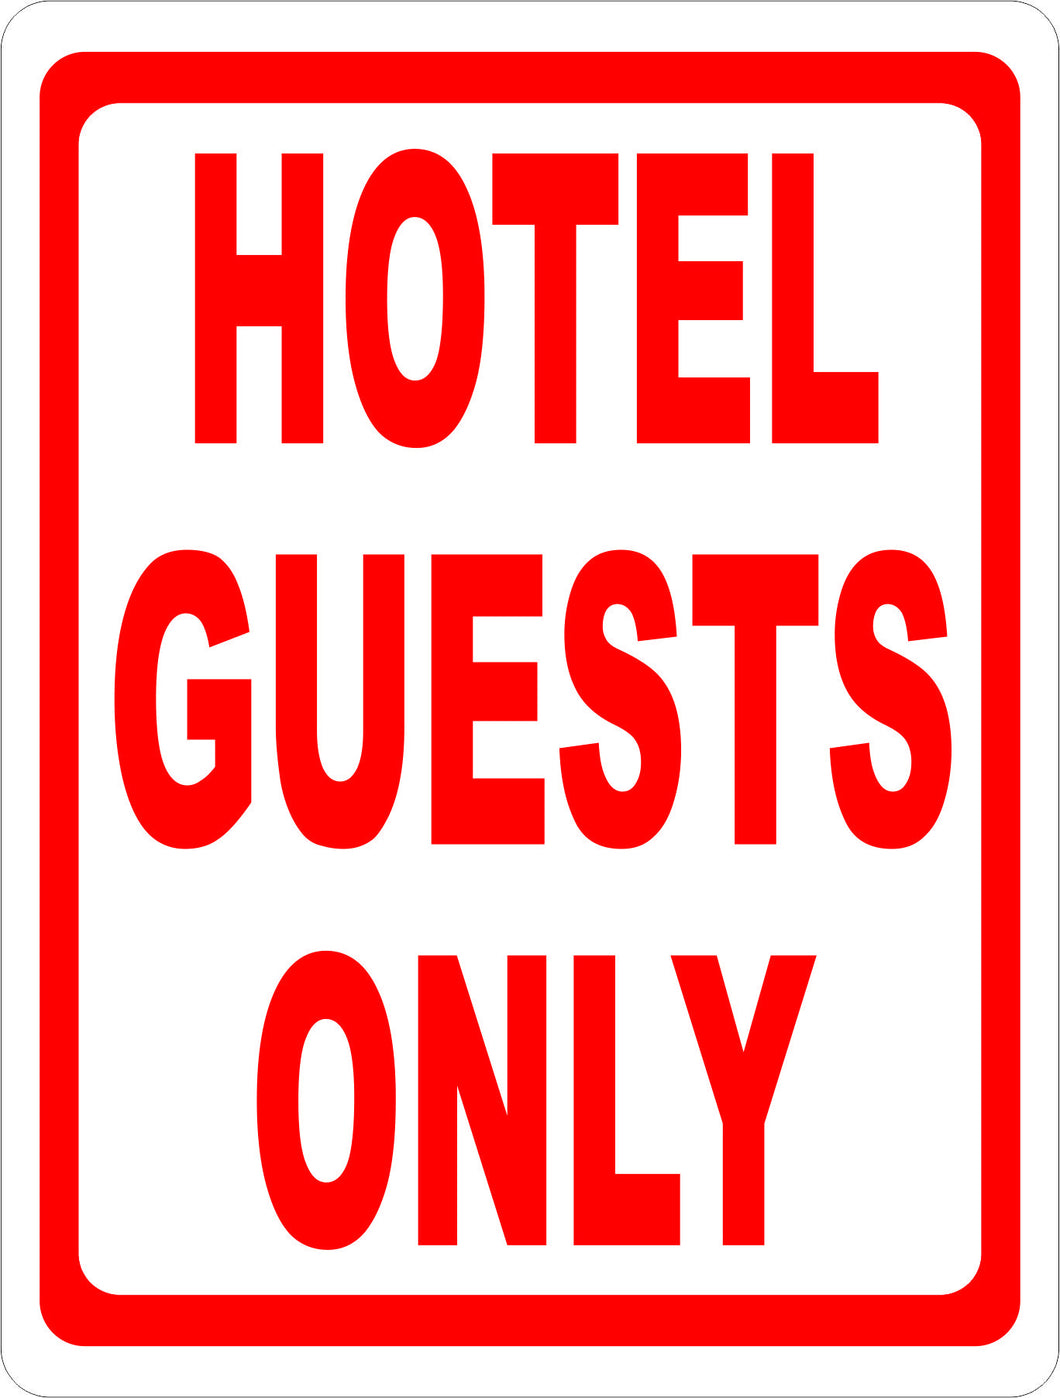 Hotel Guests Only Sign - Signs & Decals by SalaGraphics